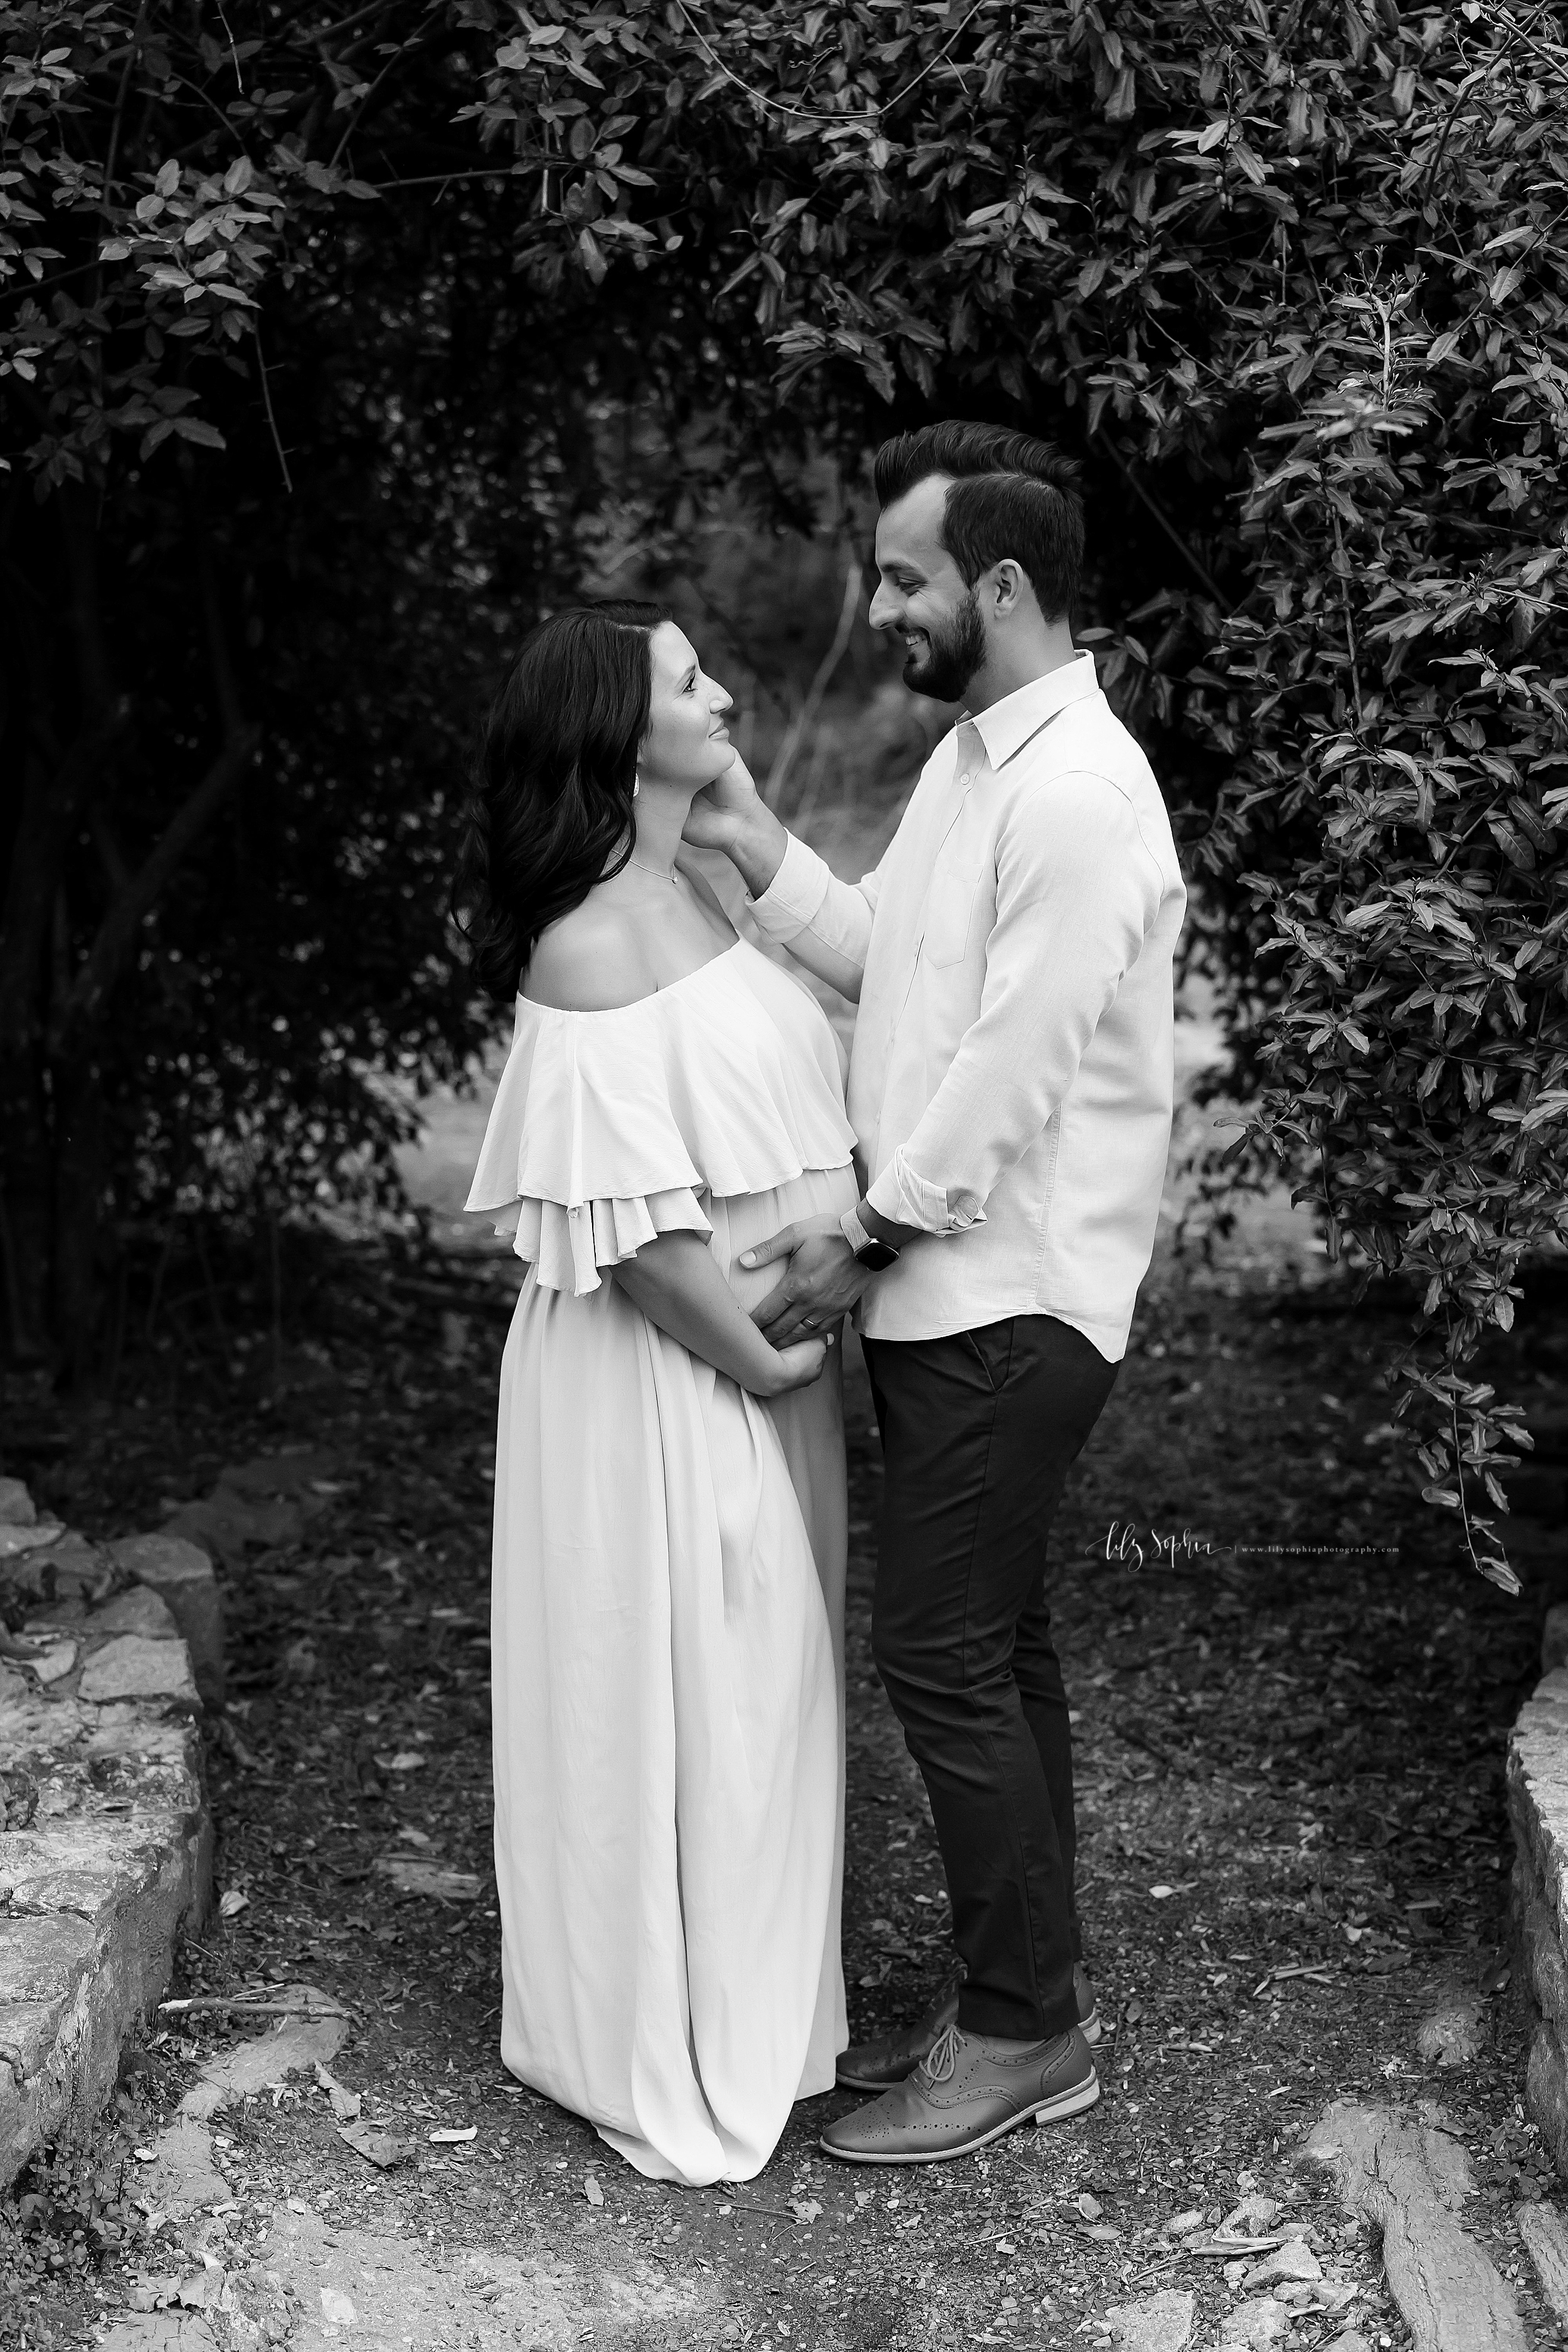 atlanta-midtown-virginia-highlands-roswell-decatur-lily-sophia-photography-maternity-sunset-session-gardens_0500.jpg